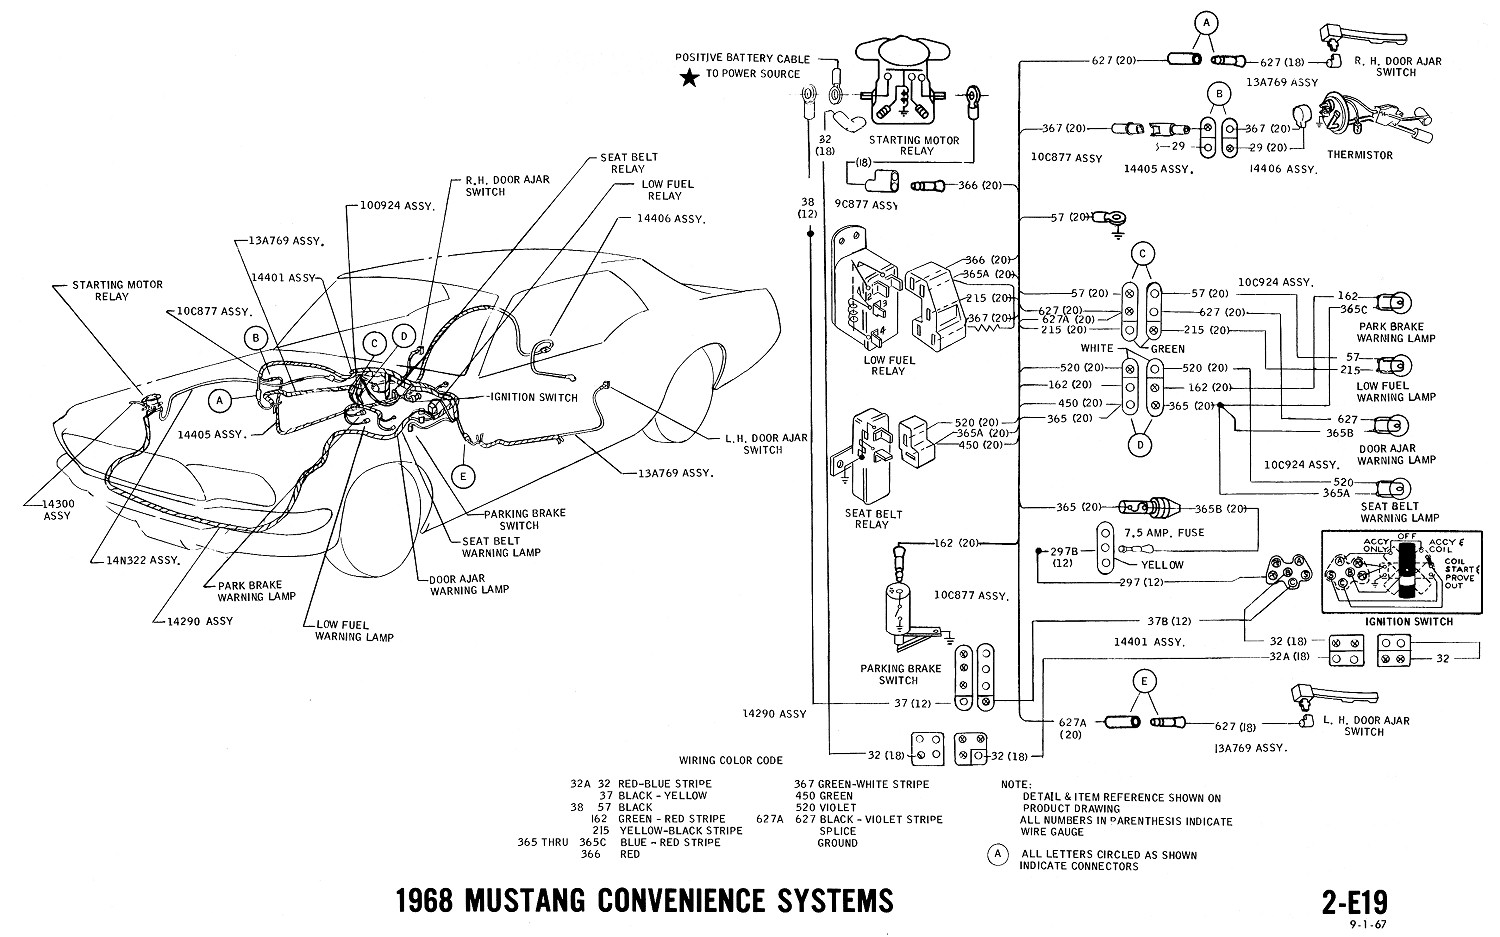 1968 mustang wiring diagrams evolving software 1968 mustang wiring schematic [ 1500 x 937 Pixel ]